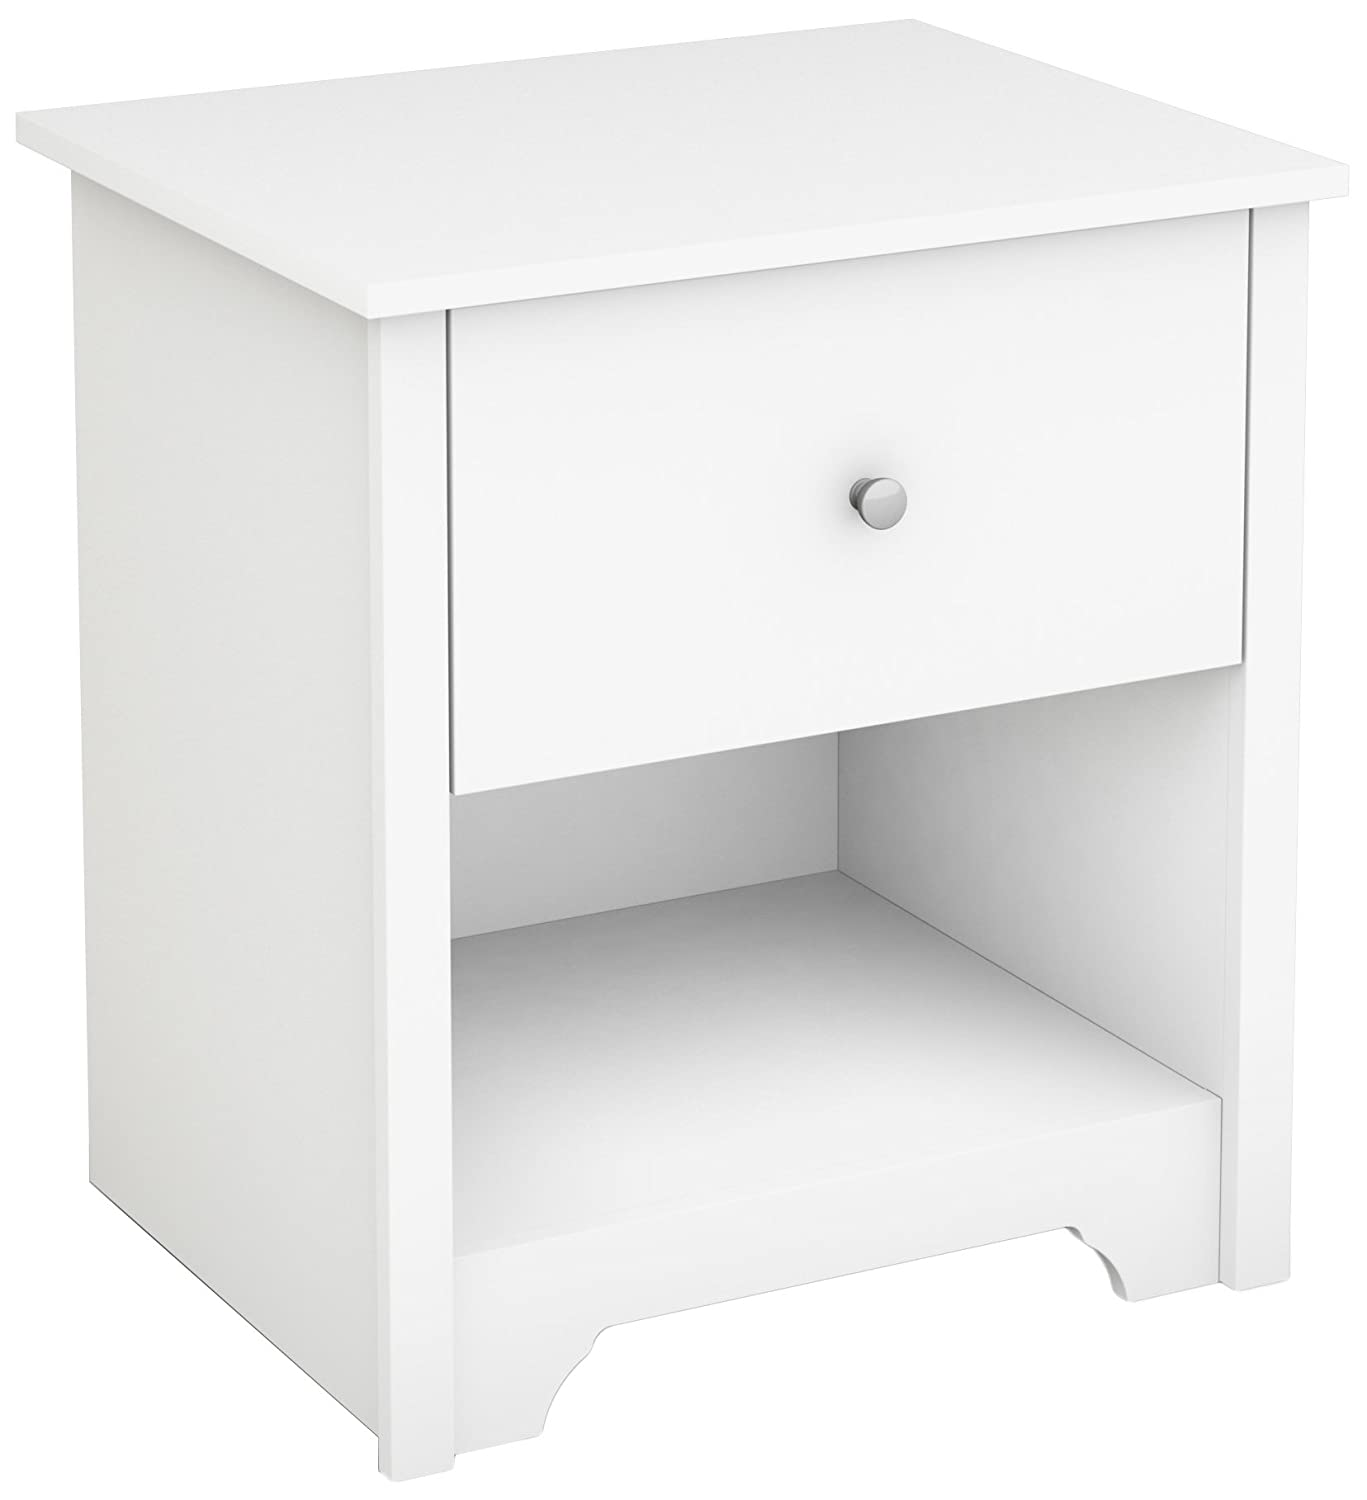 Black with Matte Nickel Handles South Shore Vito 1-Drawer Nightstand